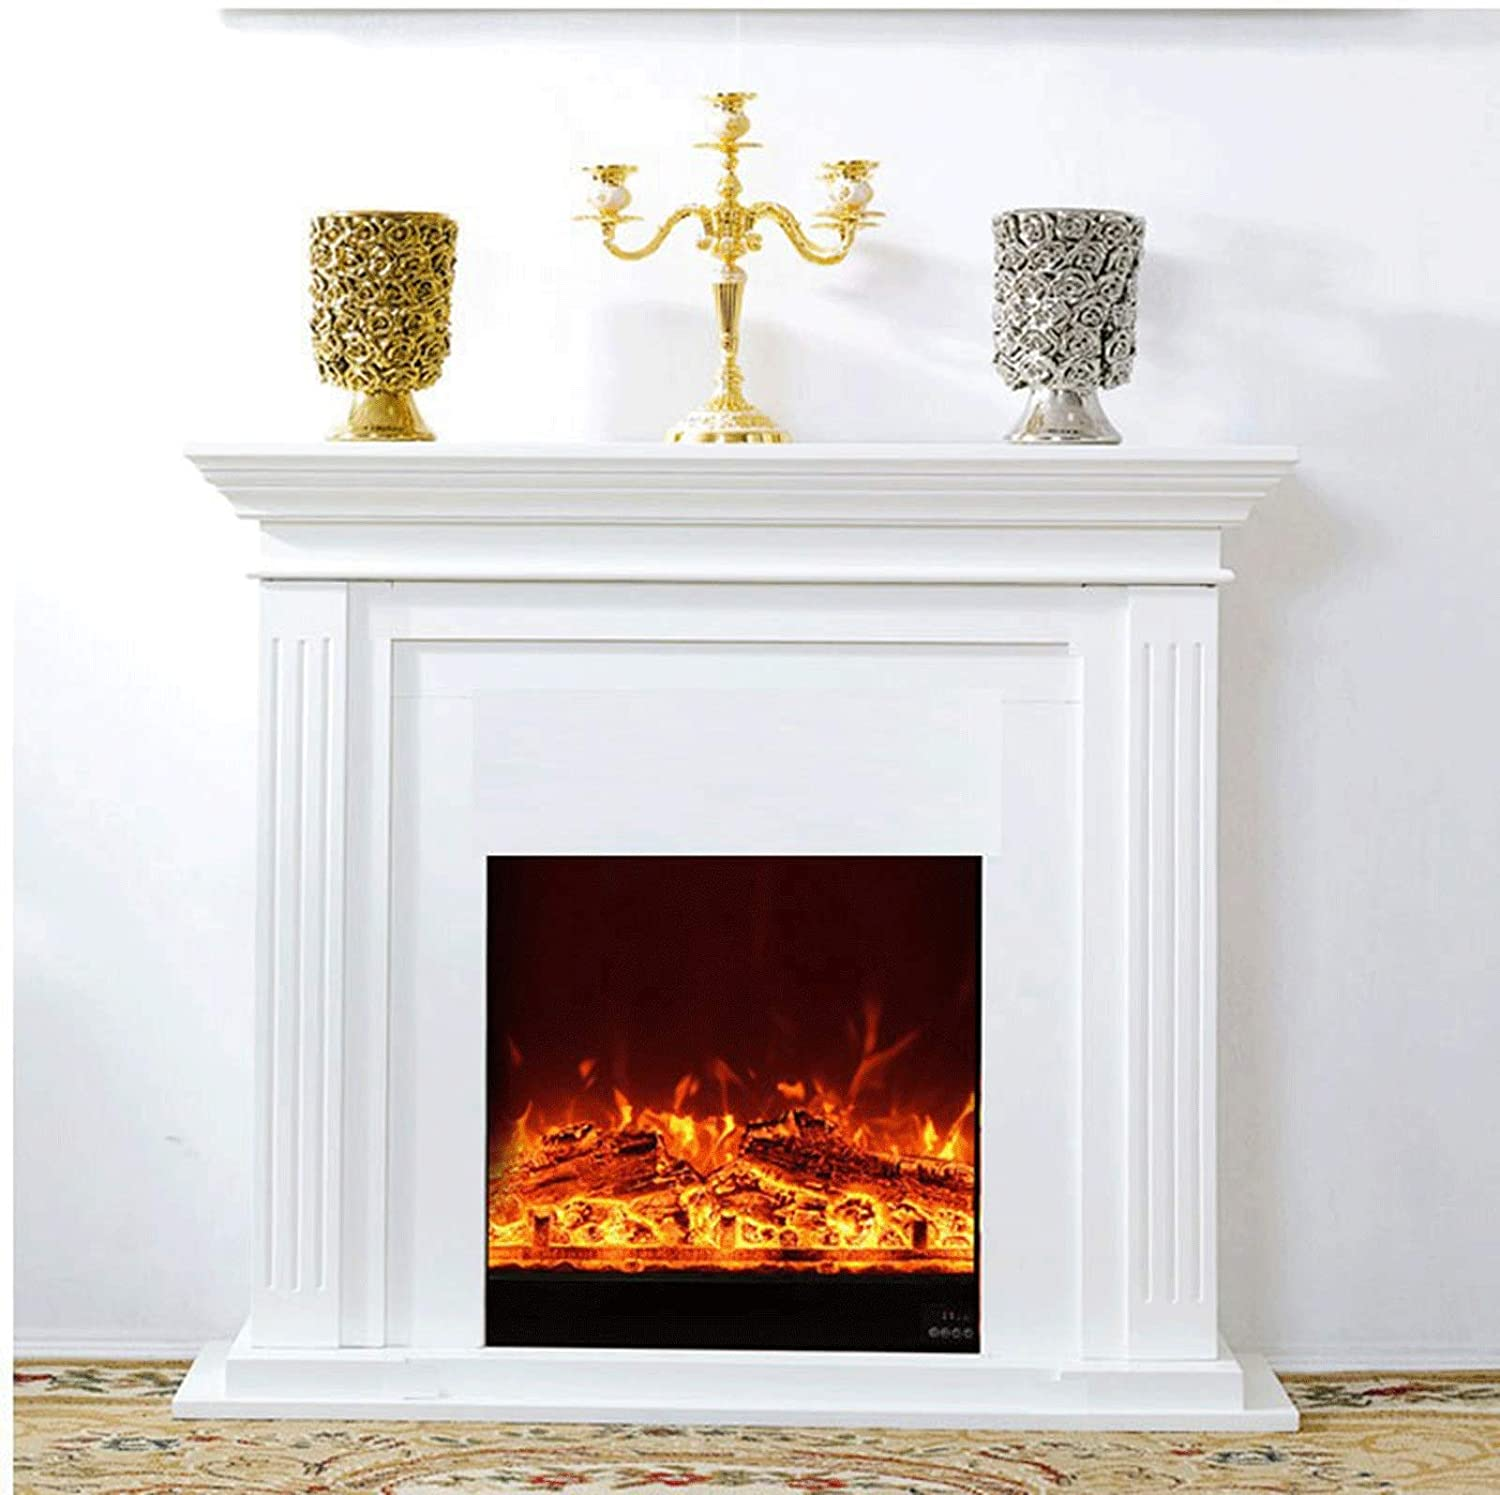 KKLL Fireplace At the Award price of surprise Freestanding Electric Heater Mante with